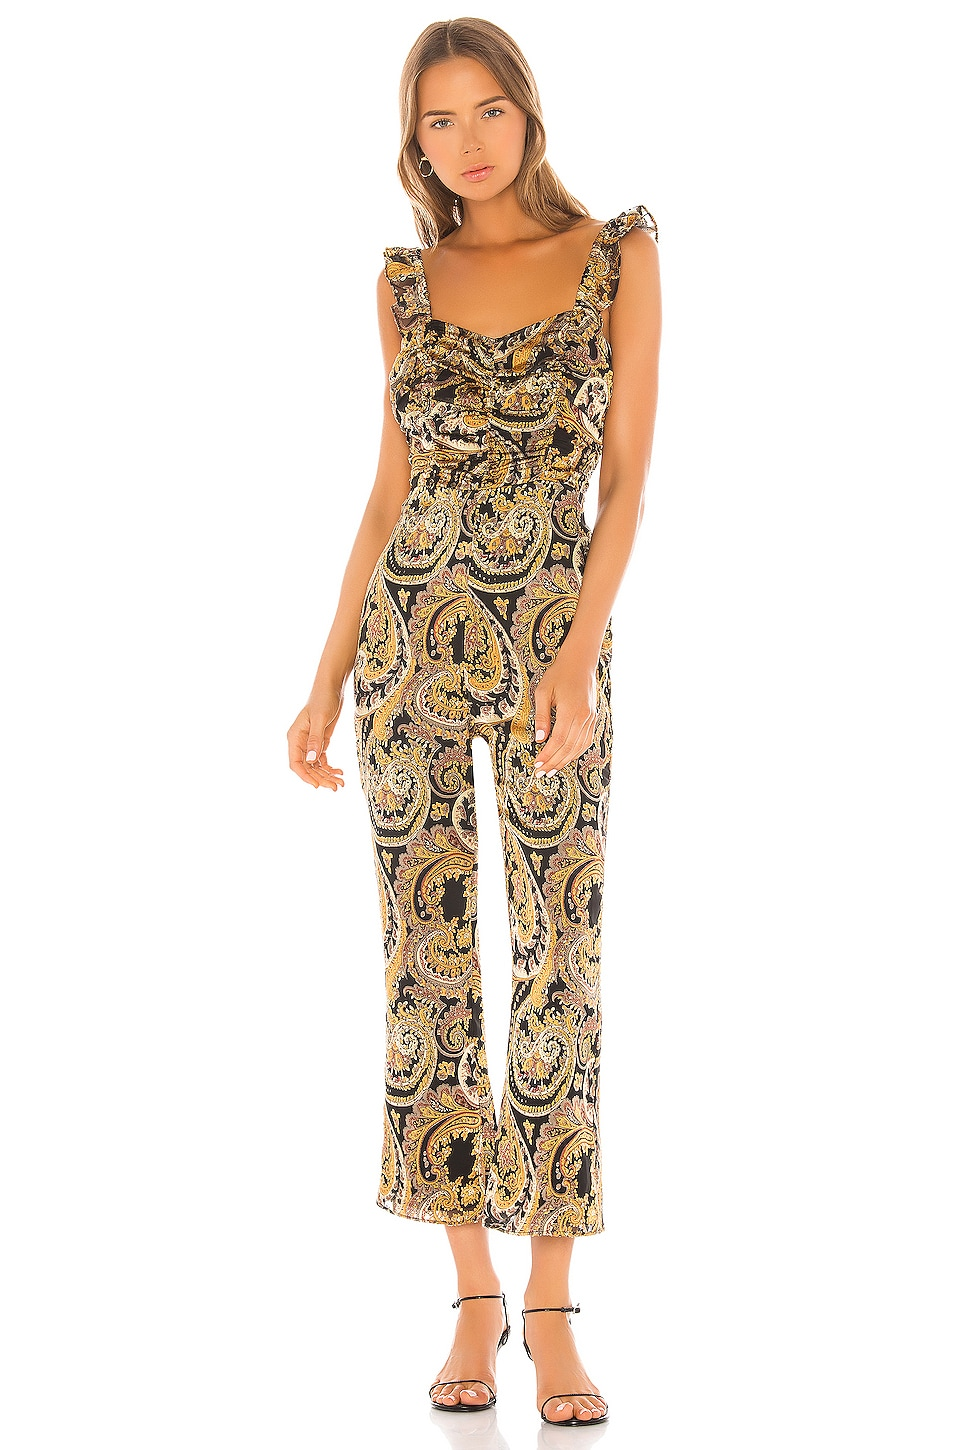 House of Harlow 1960 X REVOLVE Samaya Jumpsuit in Black & Gold Paisley